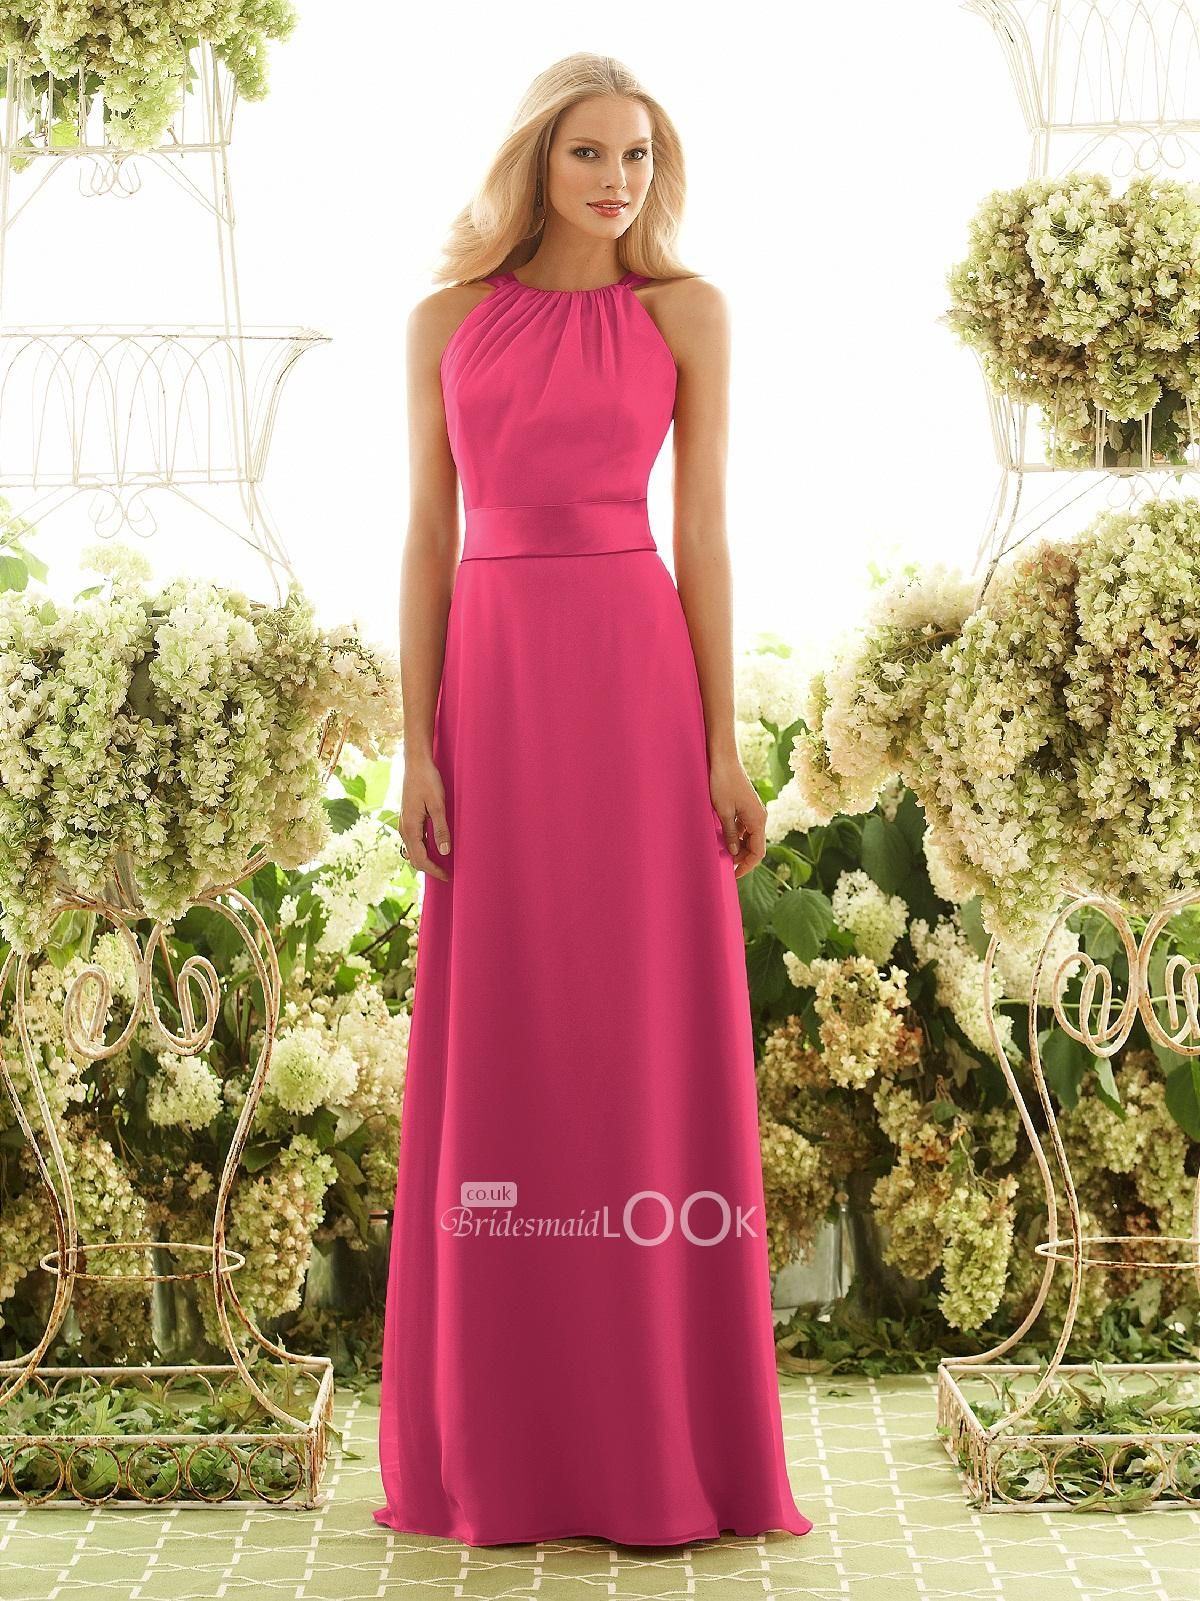 hot pink floor length bridesmaid dress with satin sash ...